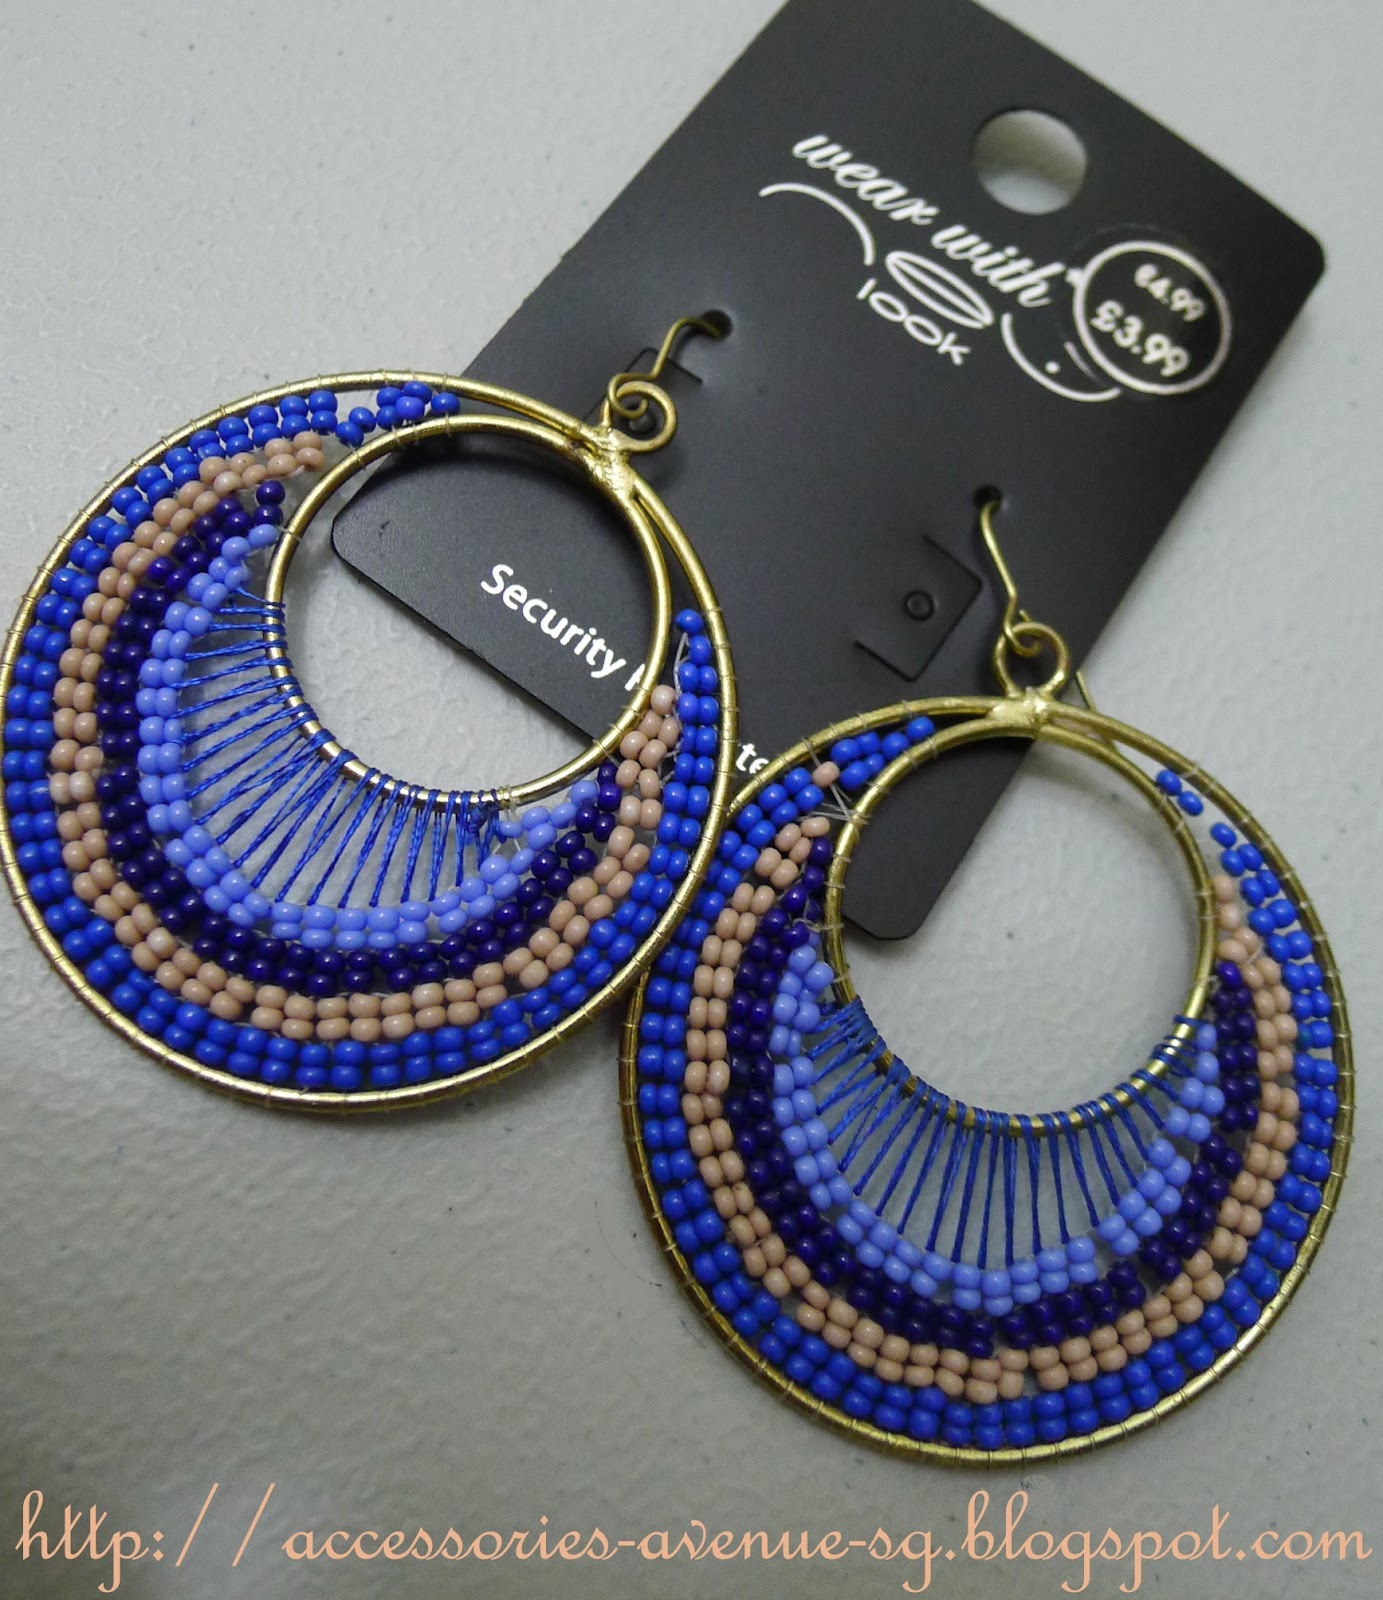 Accessories Avenue: New Look Beaded Round Earrings